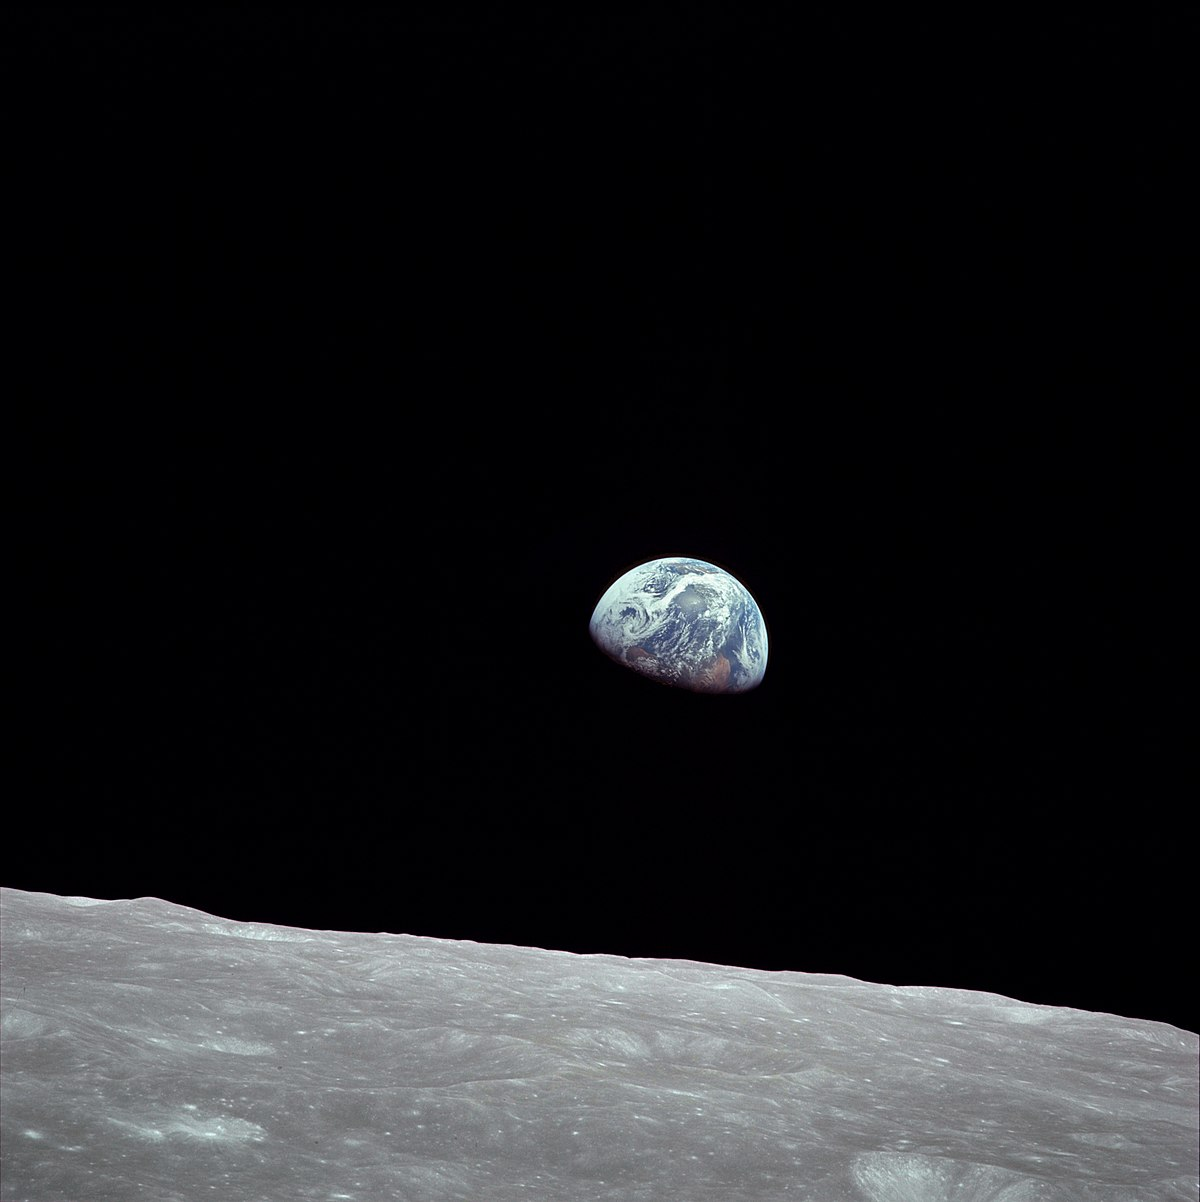 apollo missions by date - photo #27